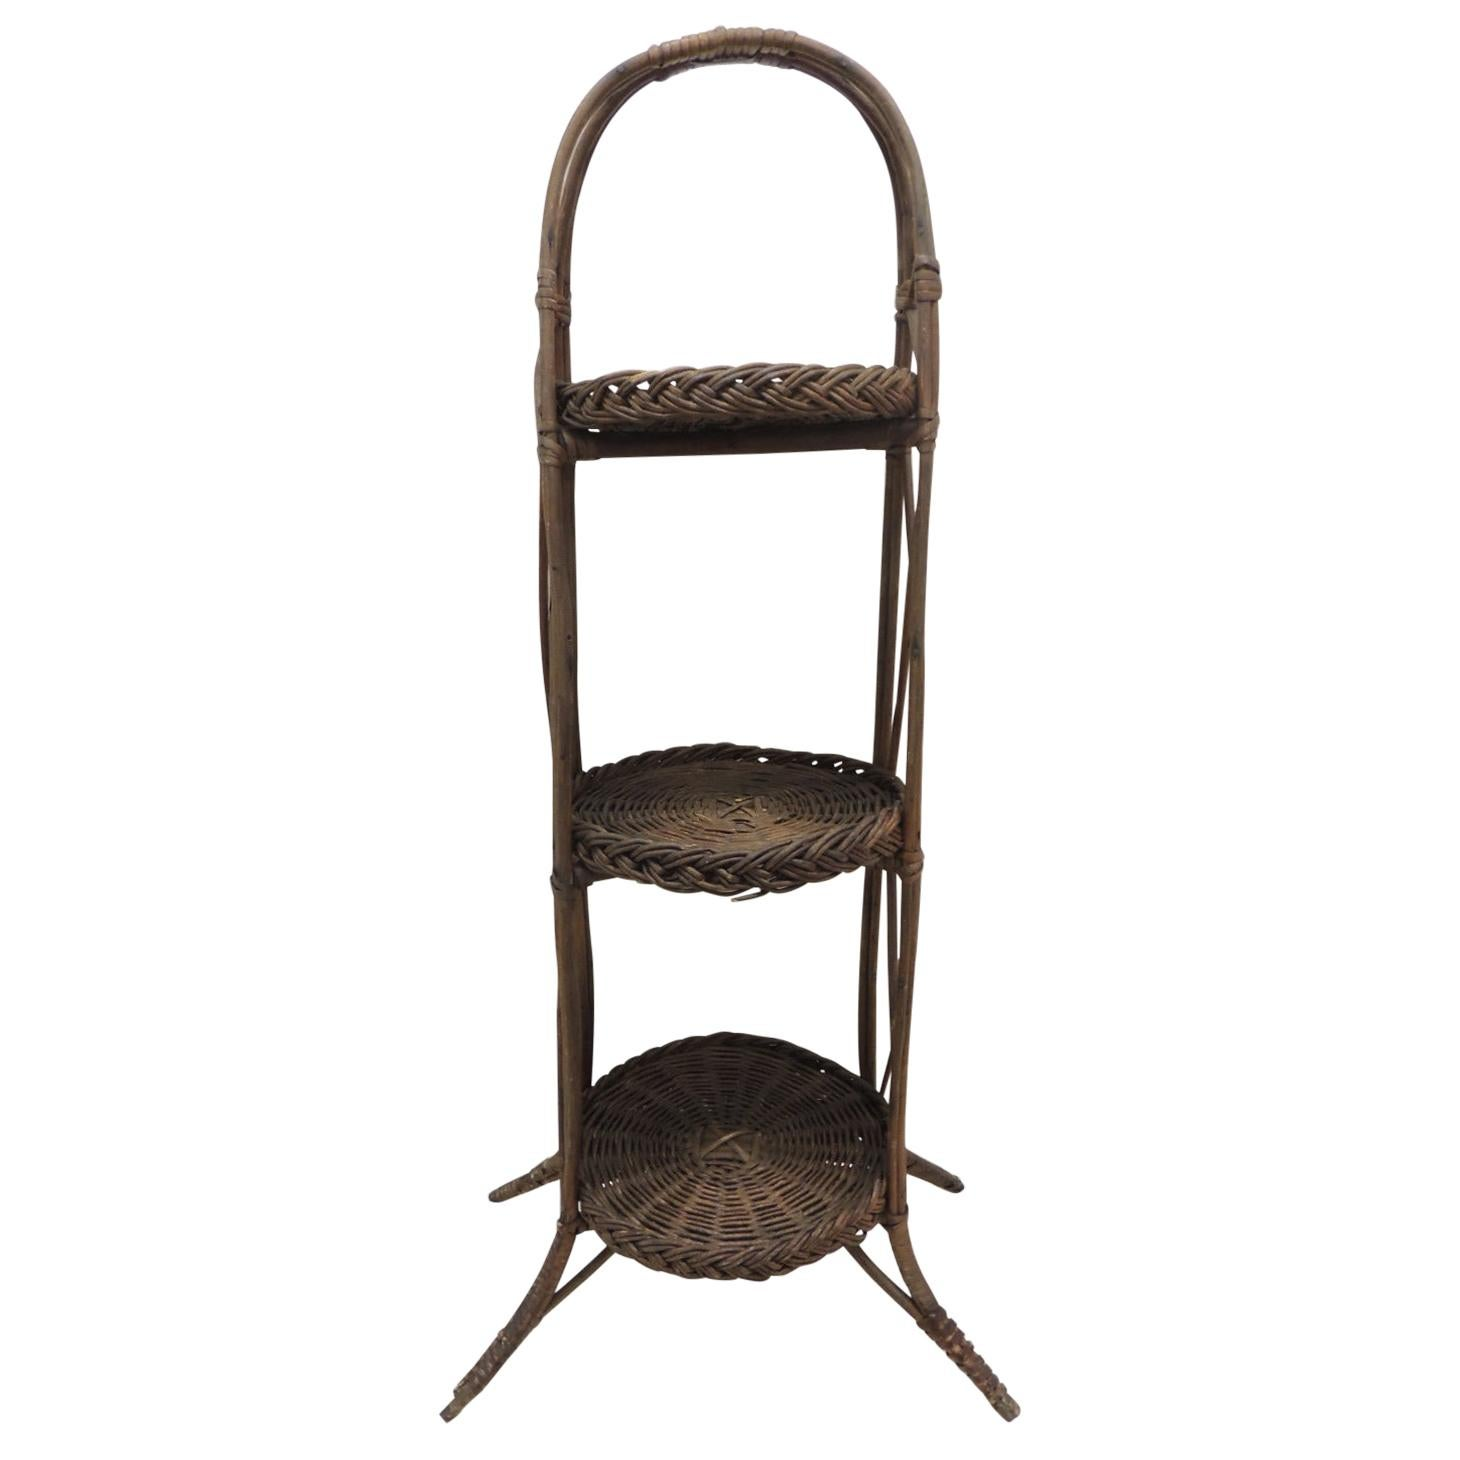 Vintage Wicker and Three-Tier Stand